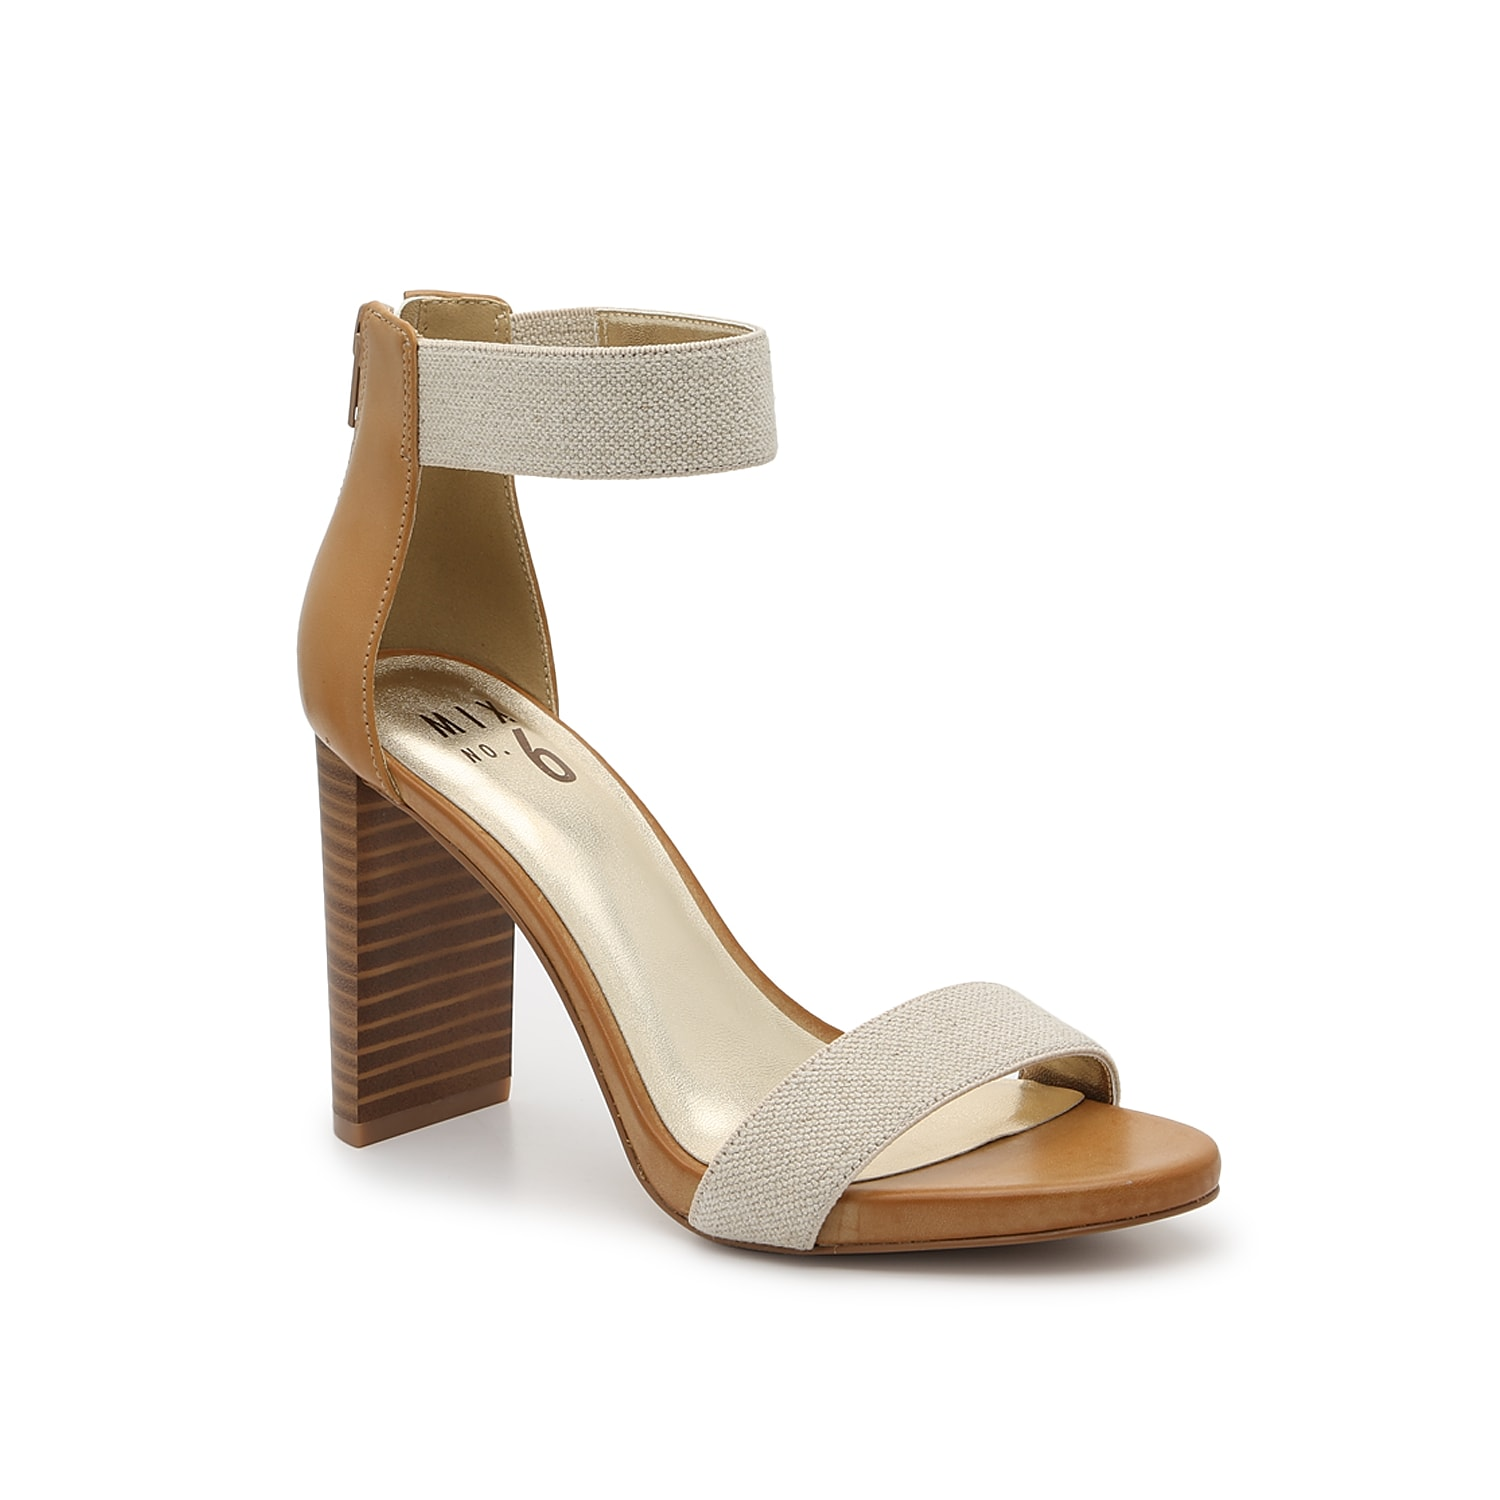 Take confident struts when wearing the Corabel sandal from Mix No. 6. This two-piece pair is fashioned with a unique heel and structured footbed for comfortable steps!